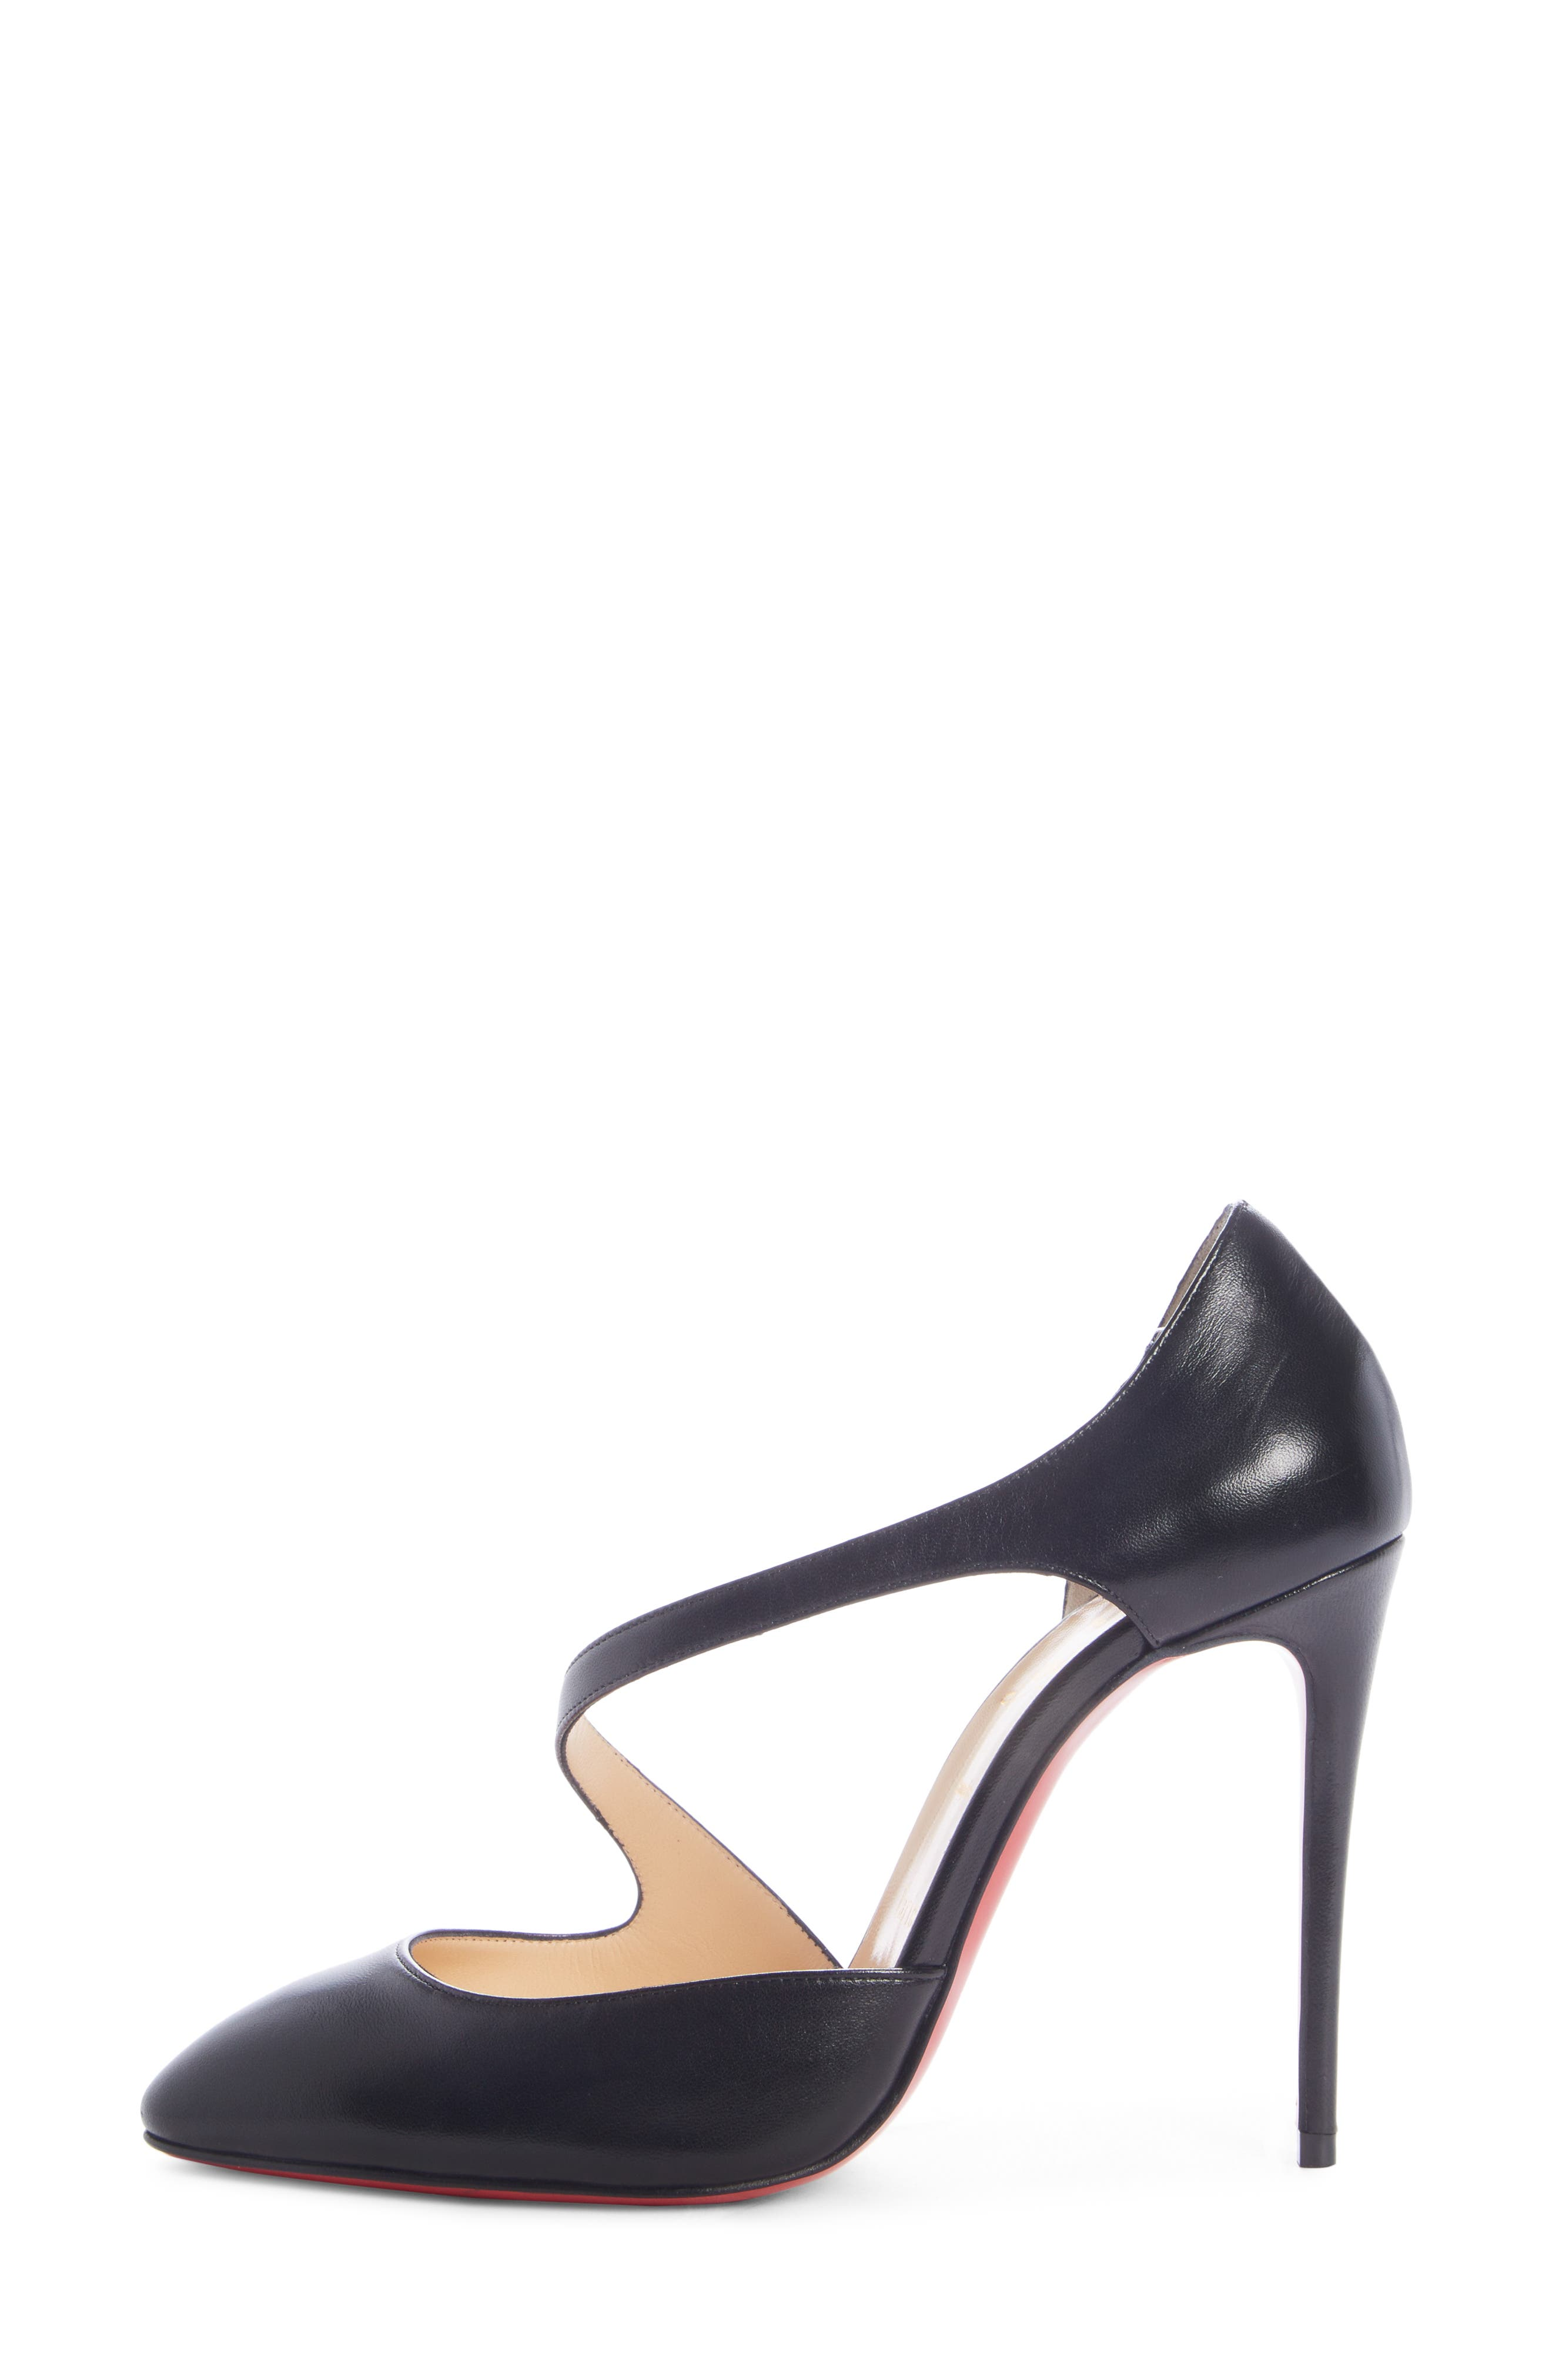 CHRISTIAN LOUBOUTIN, Catchy One Strappy d'Orsay Pump, Alternate thumbnail 3, color, BLACK